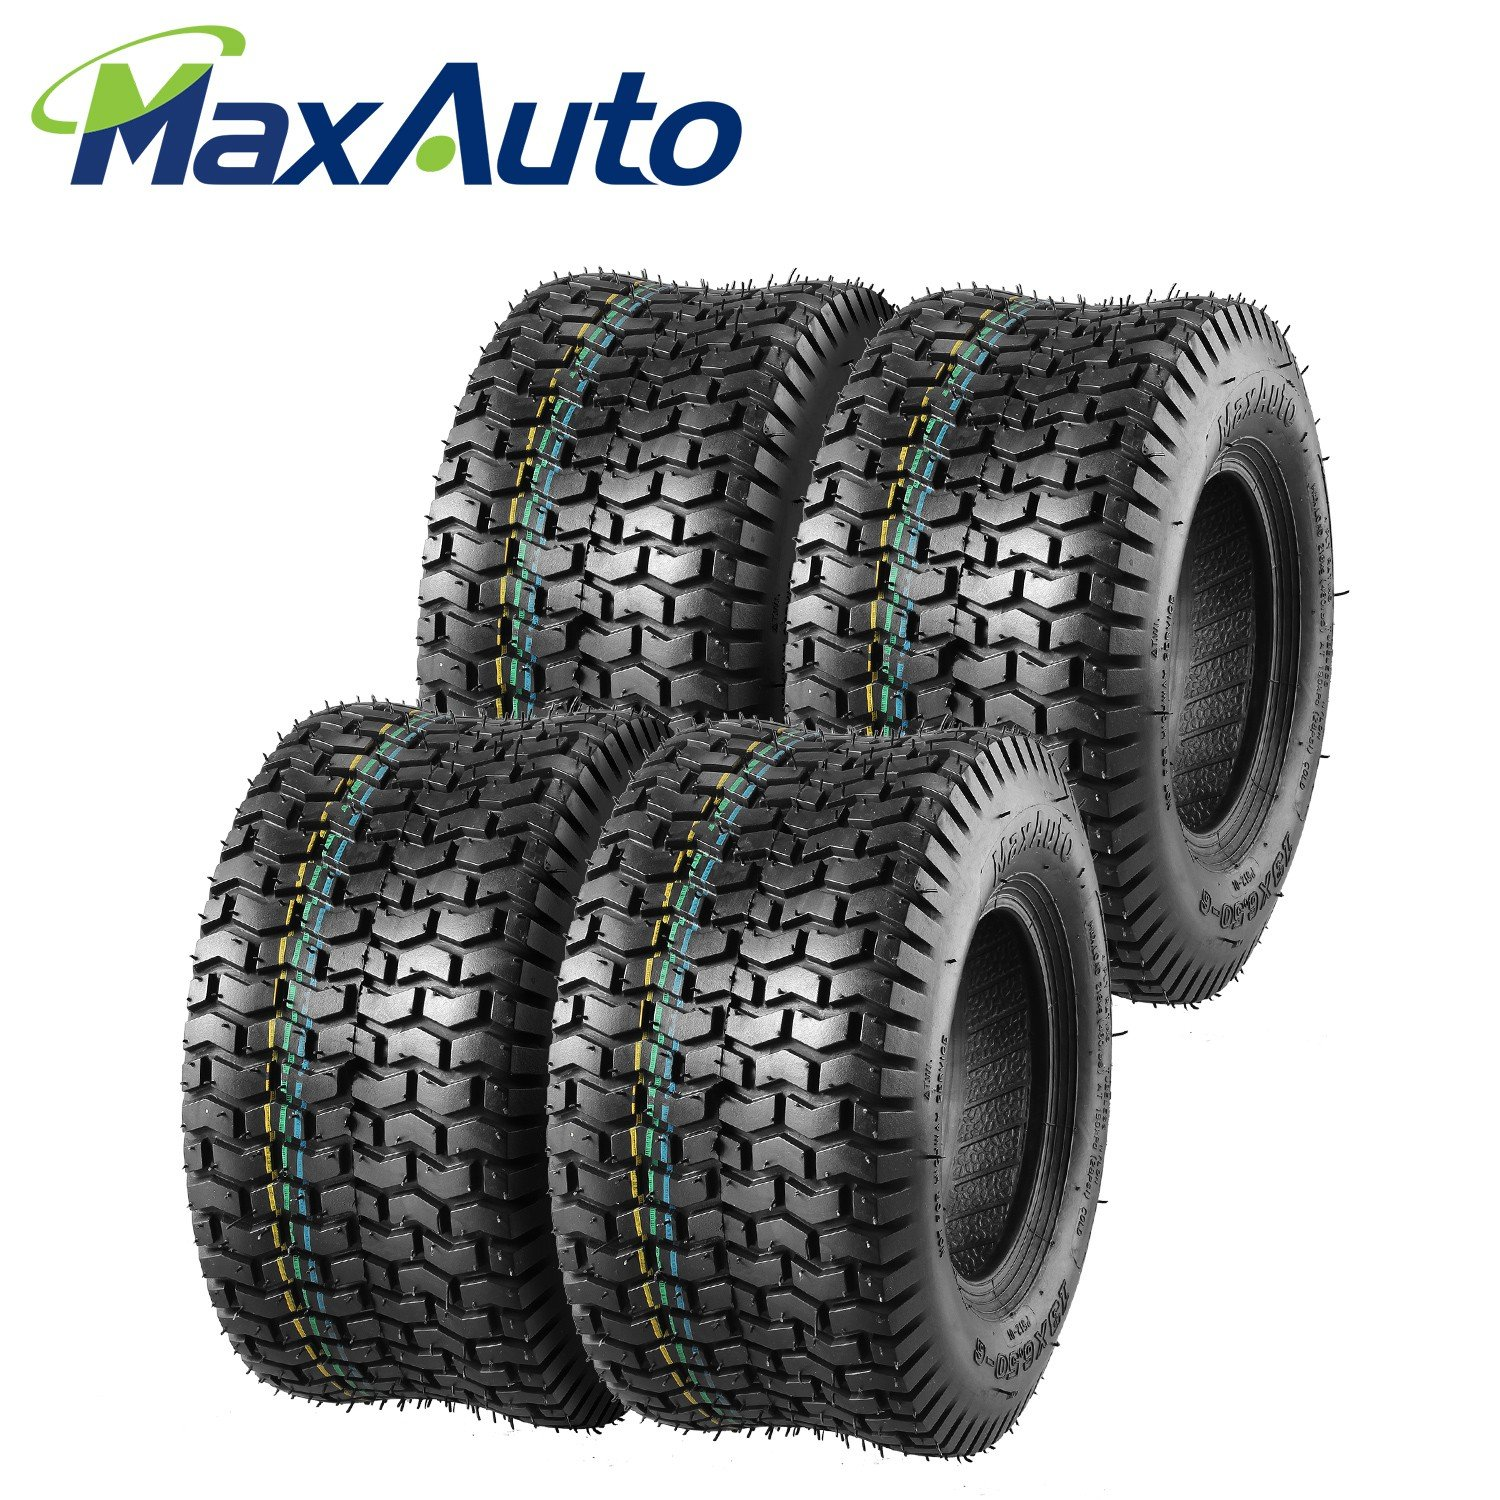 13x6.50-6 Turf Saver Tire for John Deere Lawn and Garden Tractor Mower 13/6.50-6 4-Ply(Pack of 4)